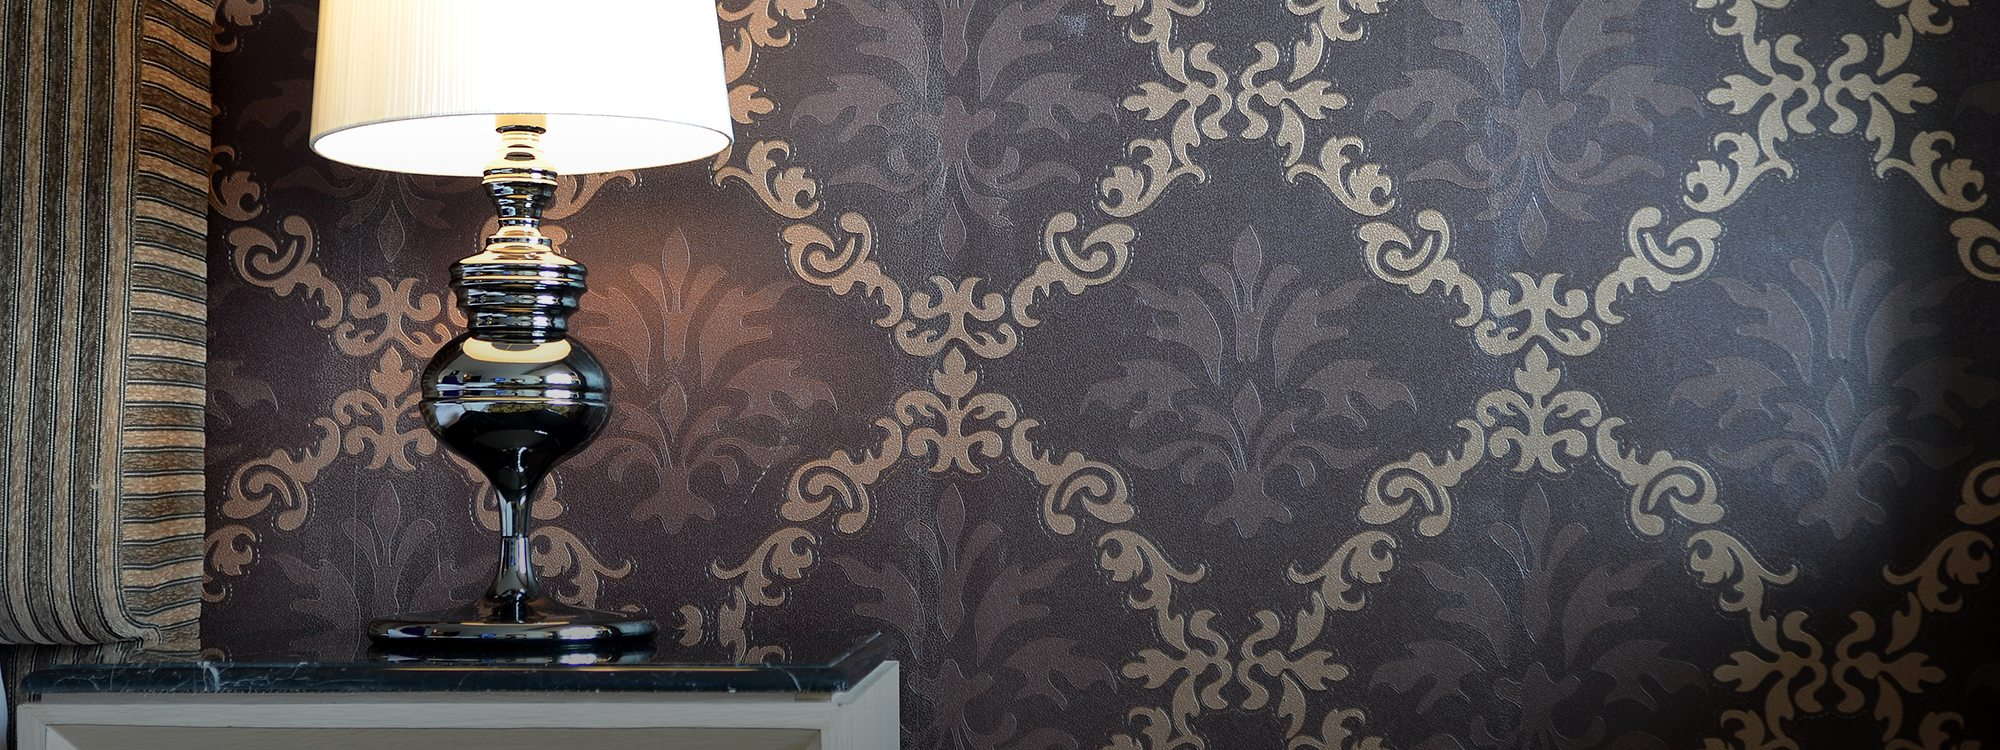 An Addition Of Wallpaper Can Enhance Your Home And Support Overall Style Creative Haus Designs Offers A Range Clic Unique Interior